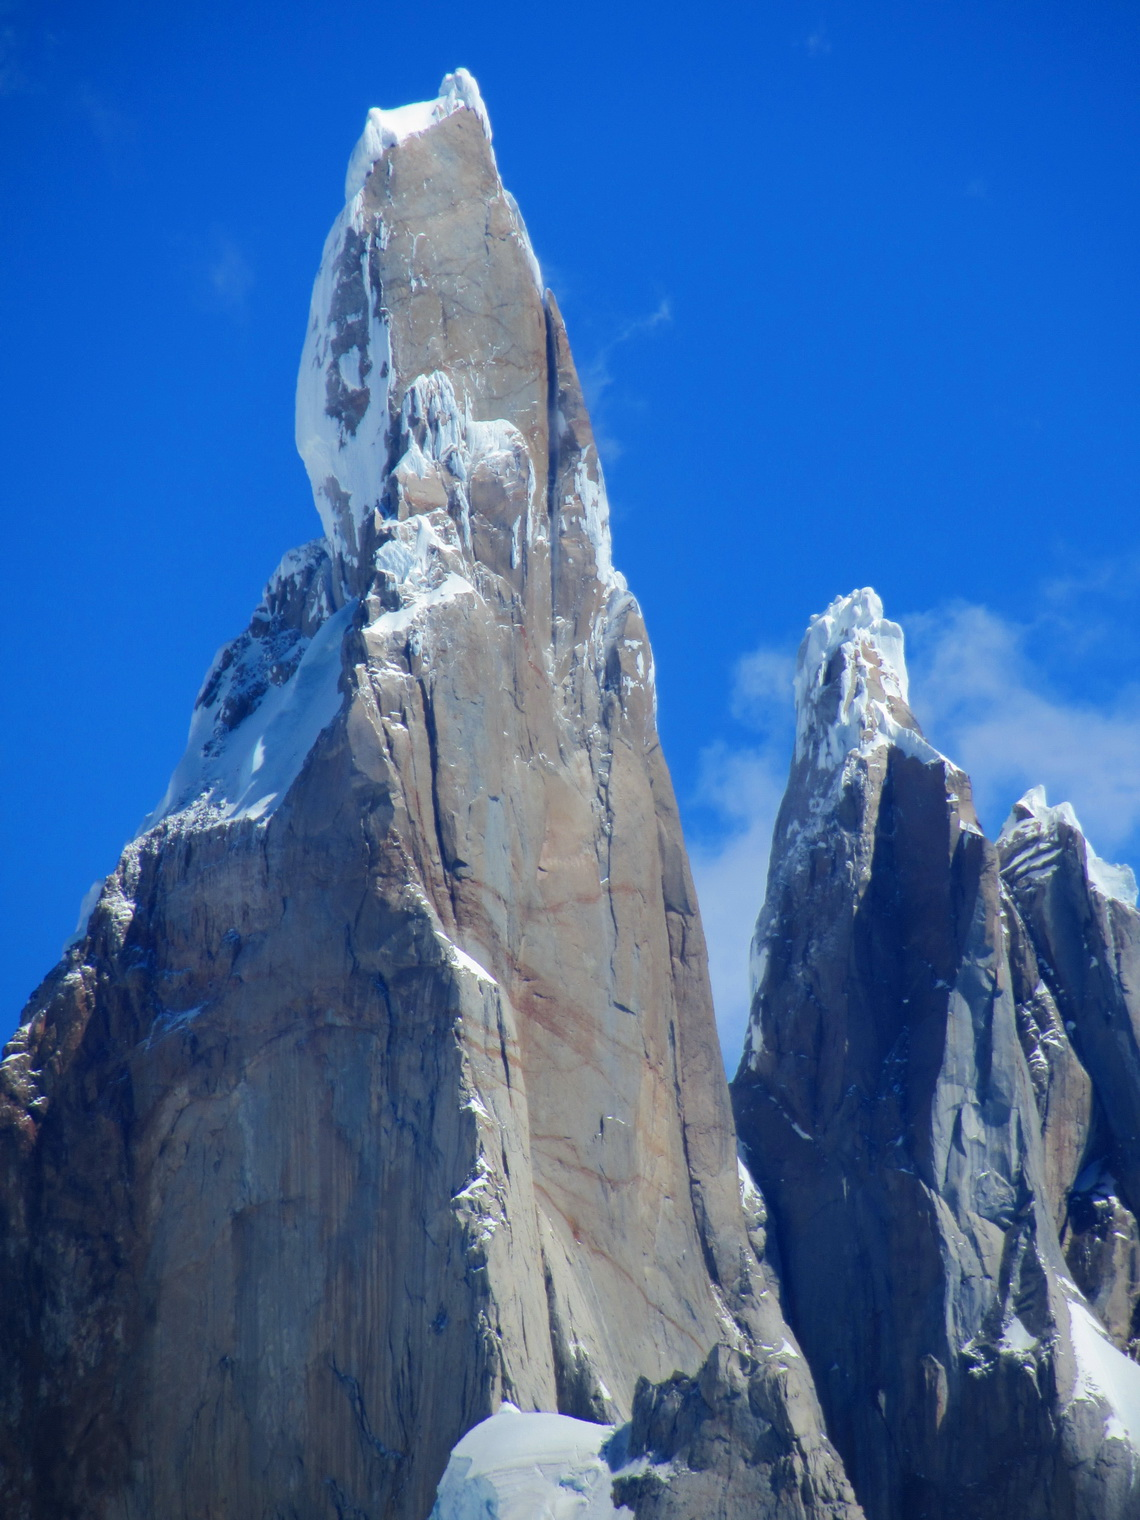 Majestic Cerro Torre, one of the most difficult and dangerous mountains on earth